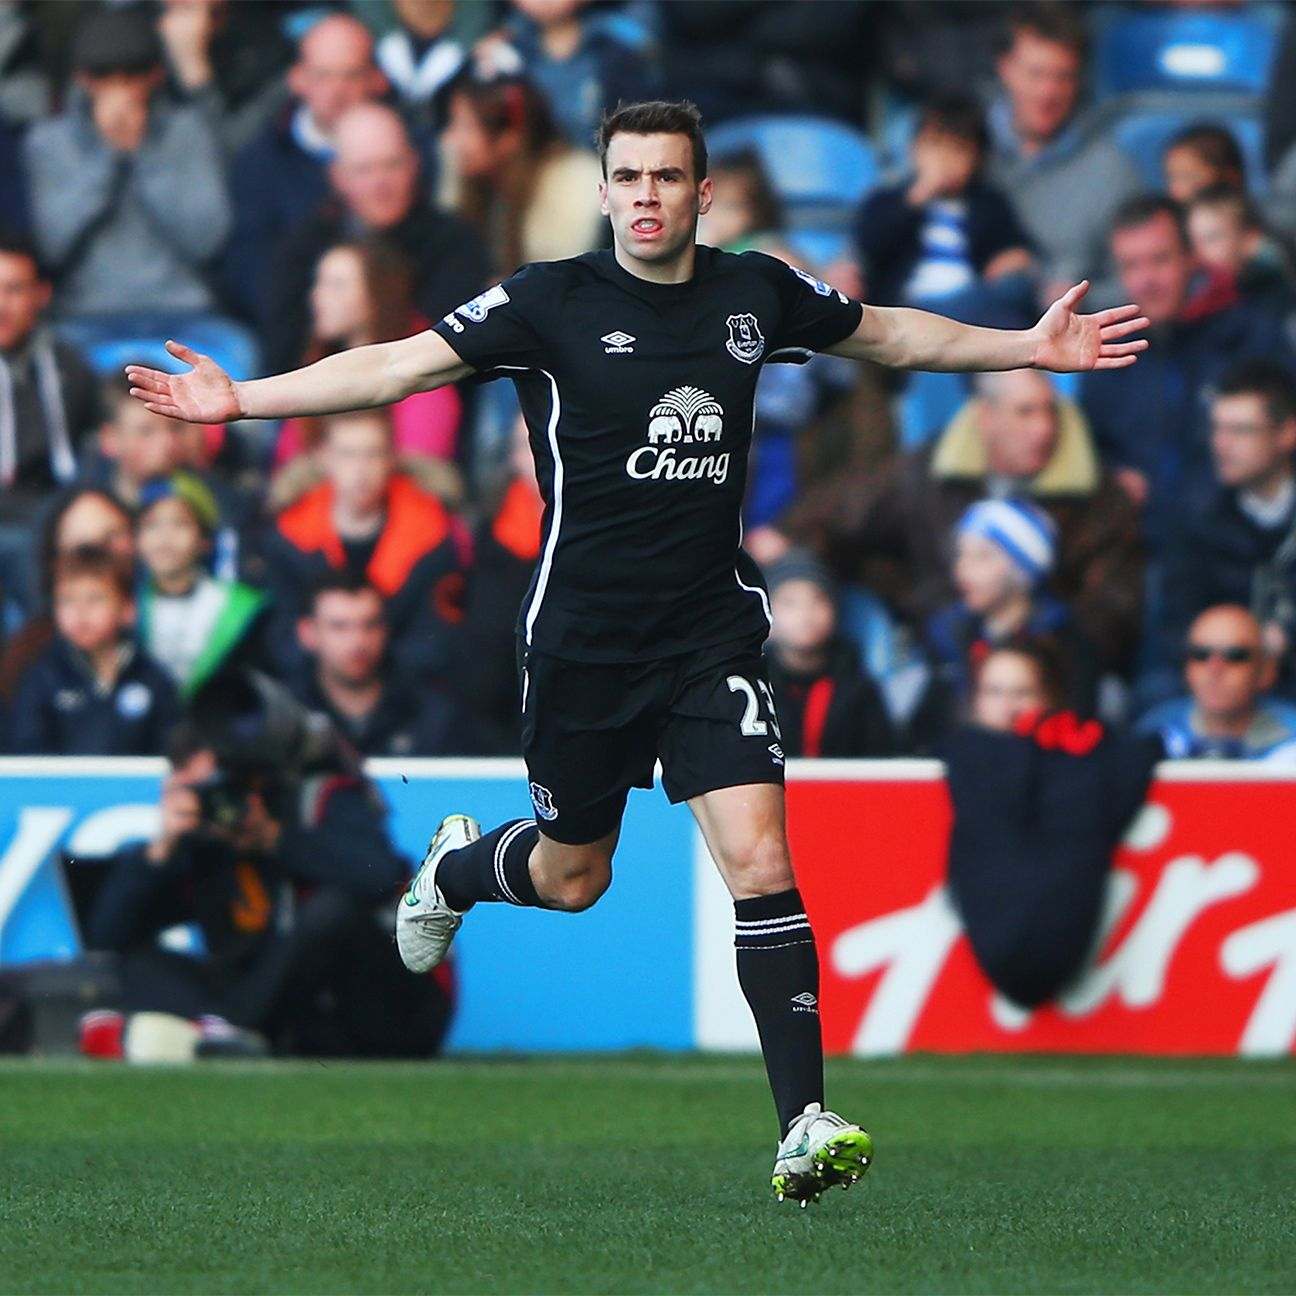 Shades of the 2013-14 Seamus Coleman are starting to be seen in recent Everton performances.